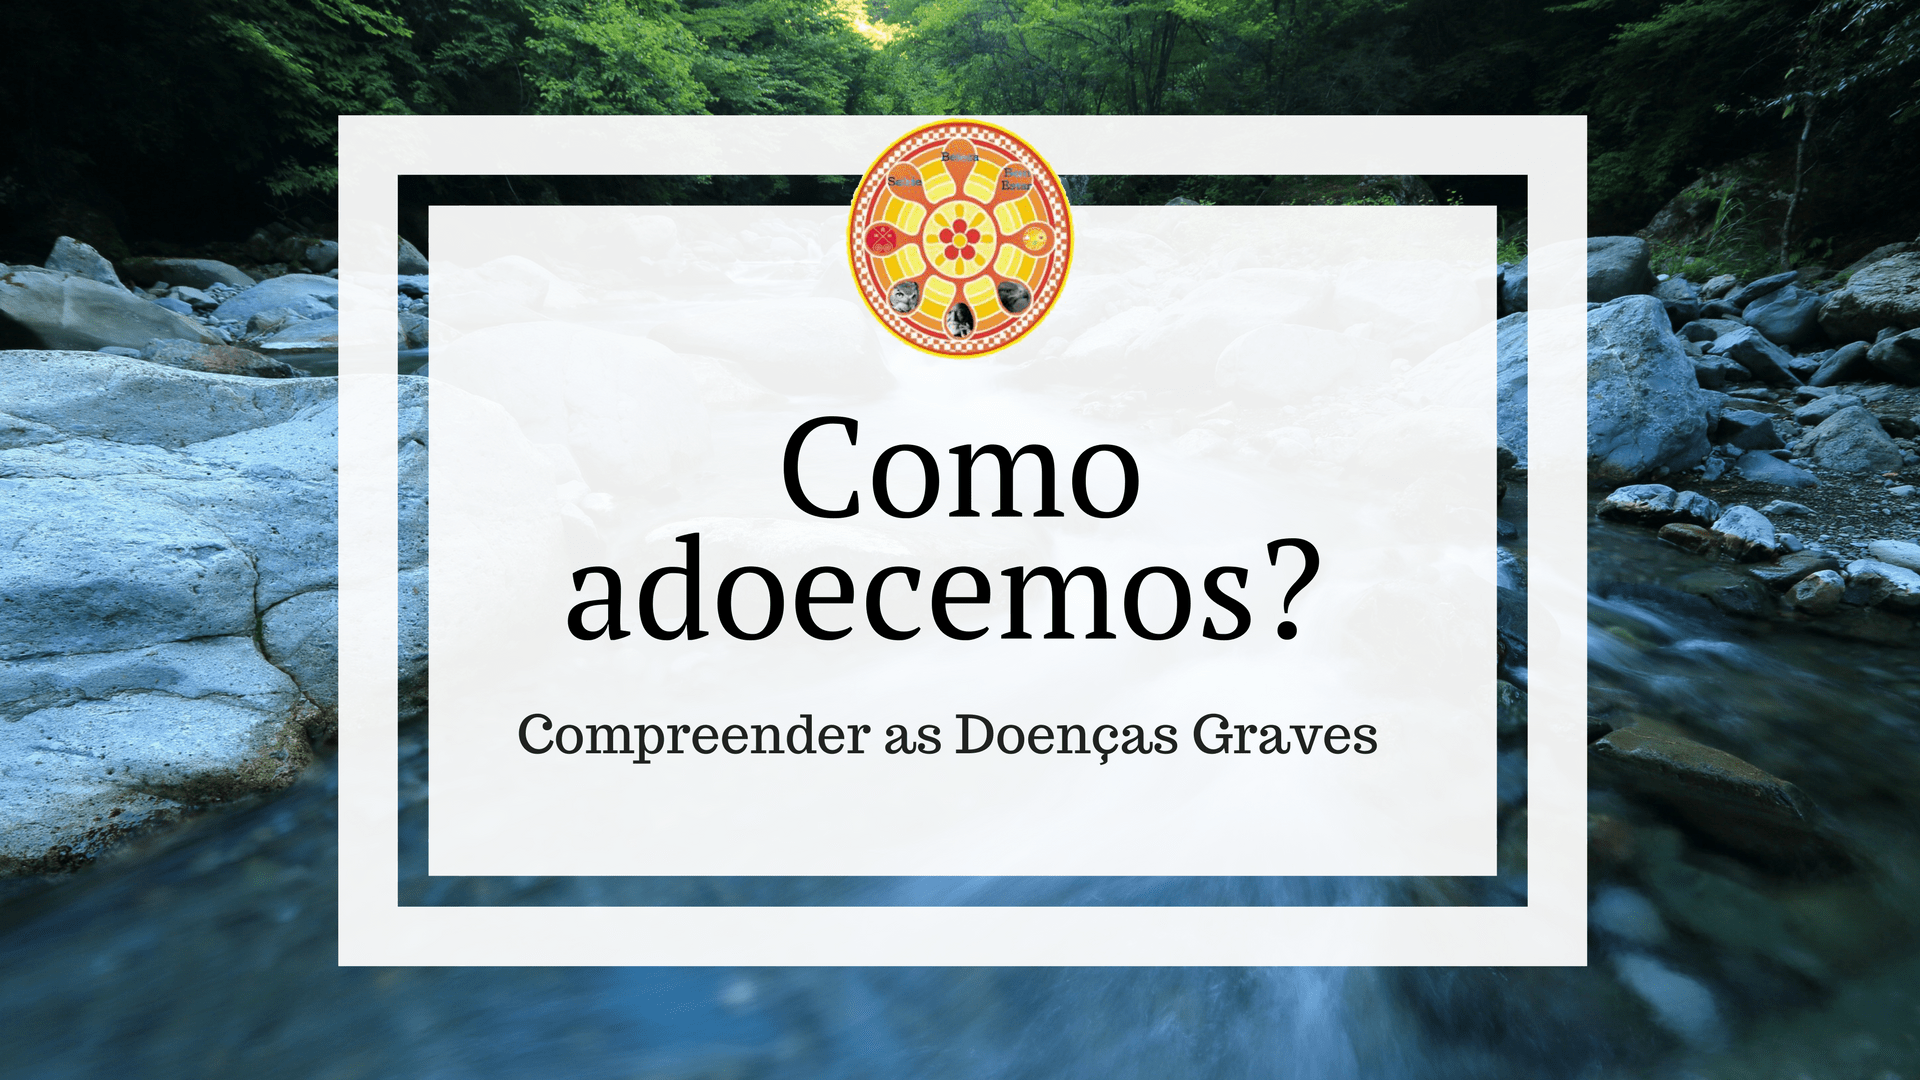 adoecemos